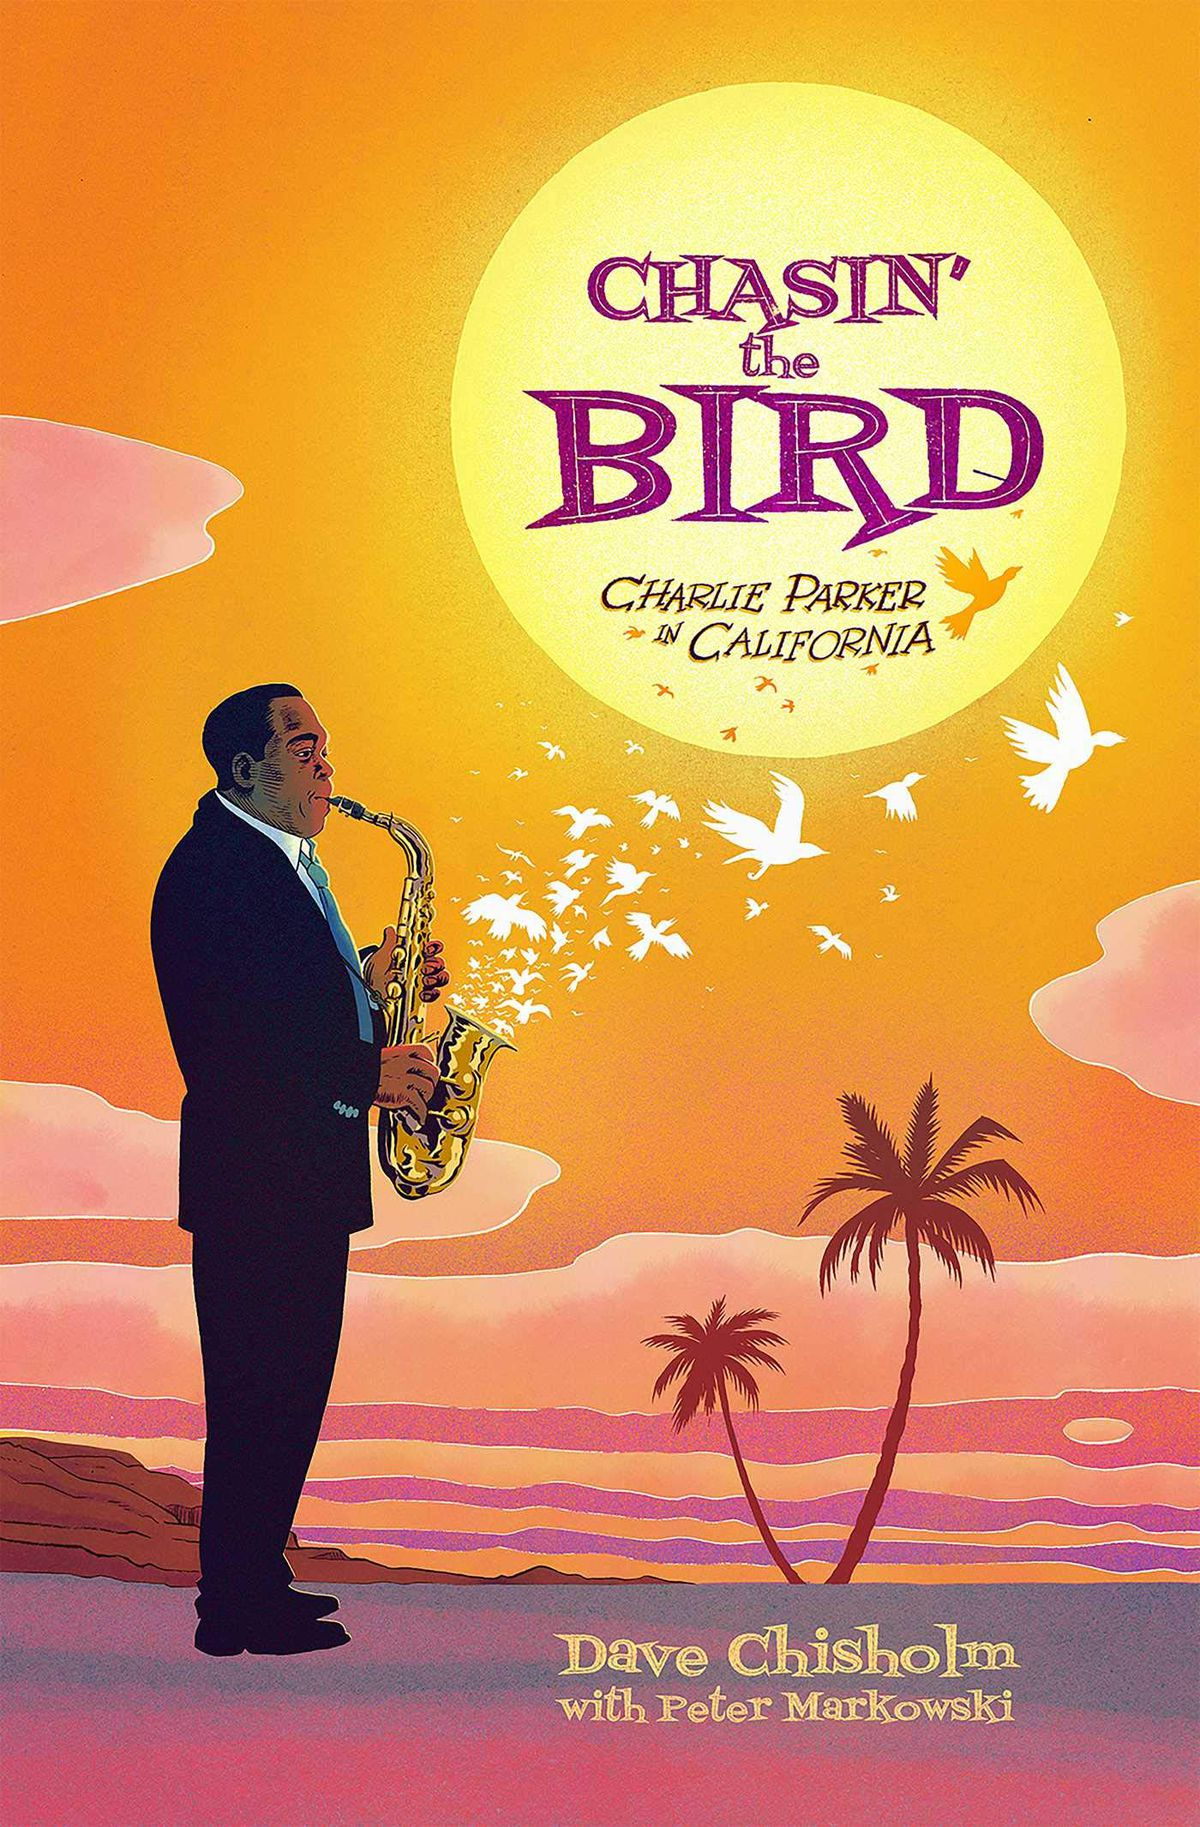 Charlie Parker plays saxophone in the desert, as white doves fly from its bell, on the cover of Chasin' the Bird: Charlie Parker in California (2020).